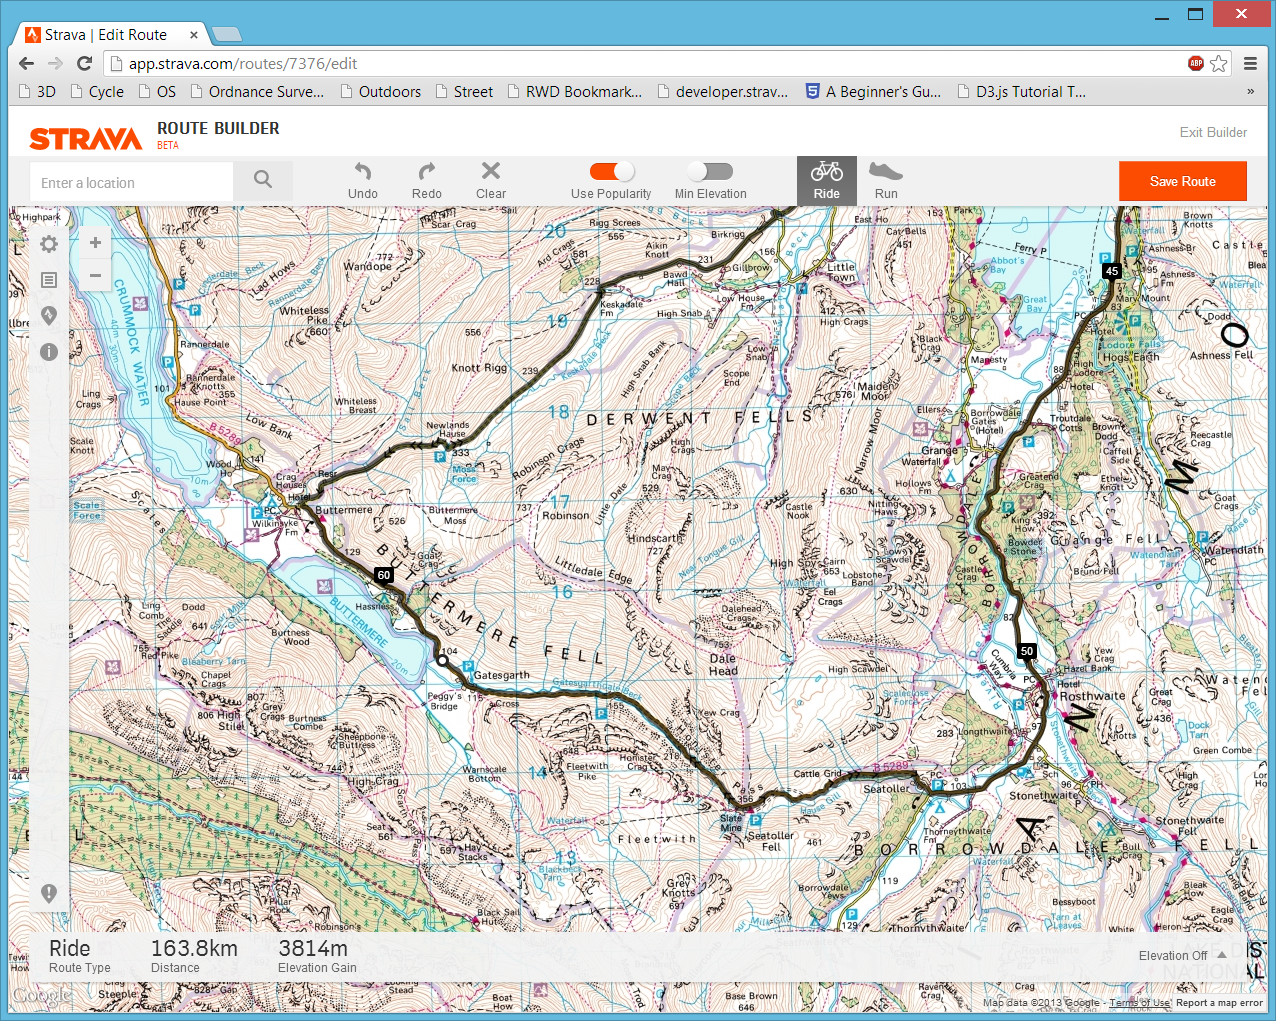 Strava Route map flipped to Ordnance Survey